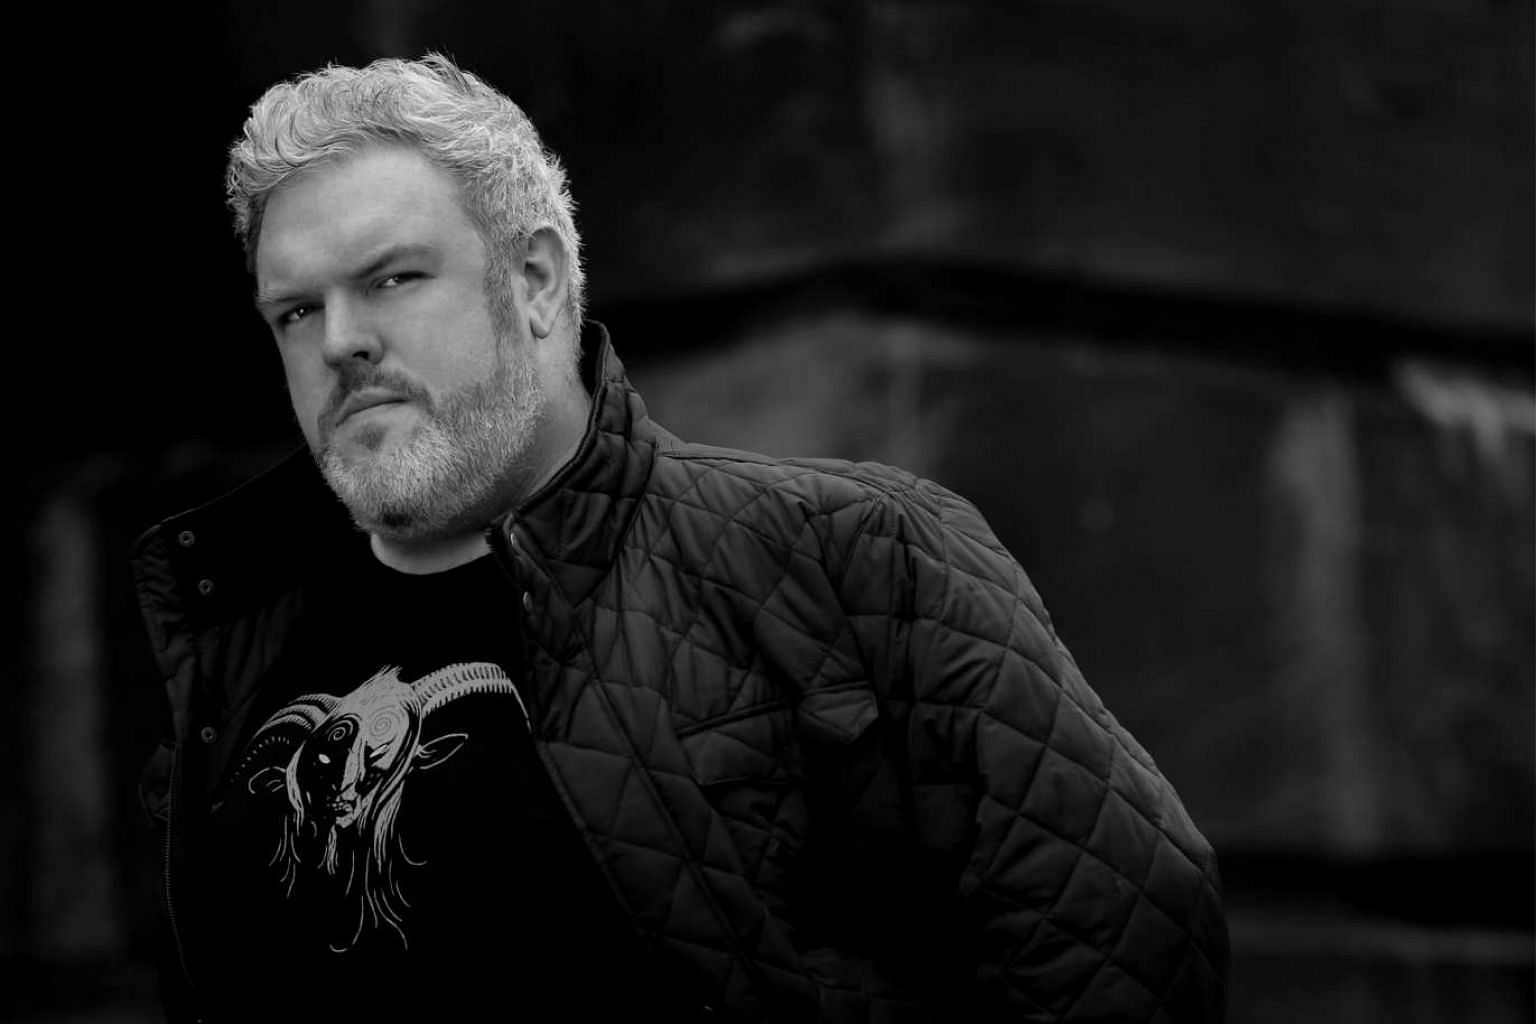 Actor Kristian Nairn, who plays Hodor on Game Of Thrones, is also a DJ.